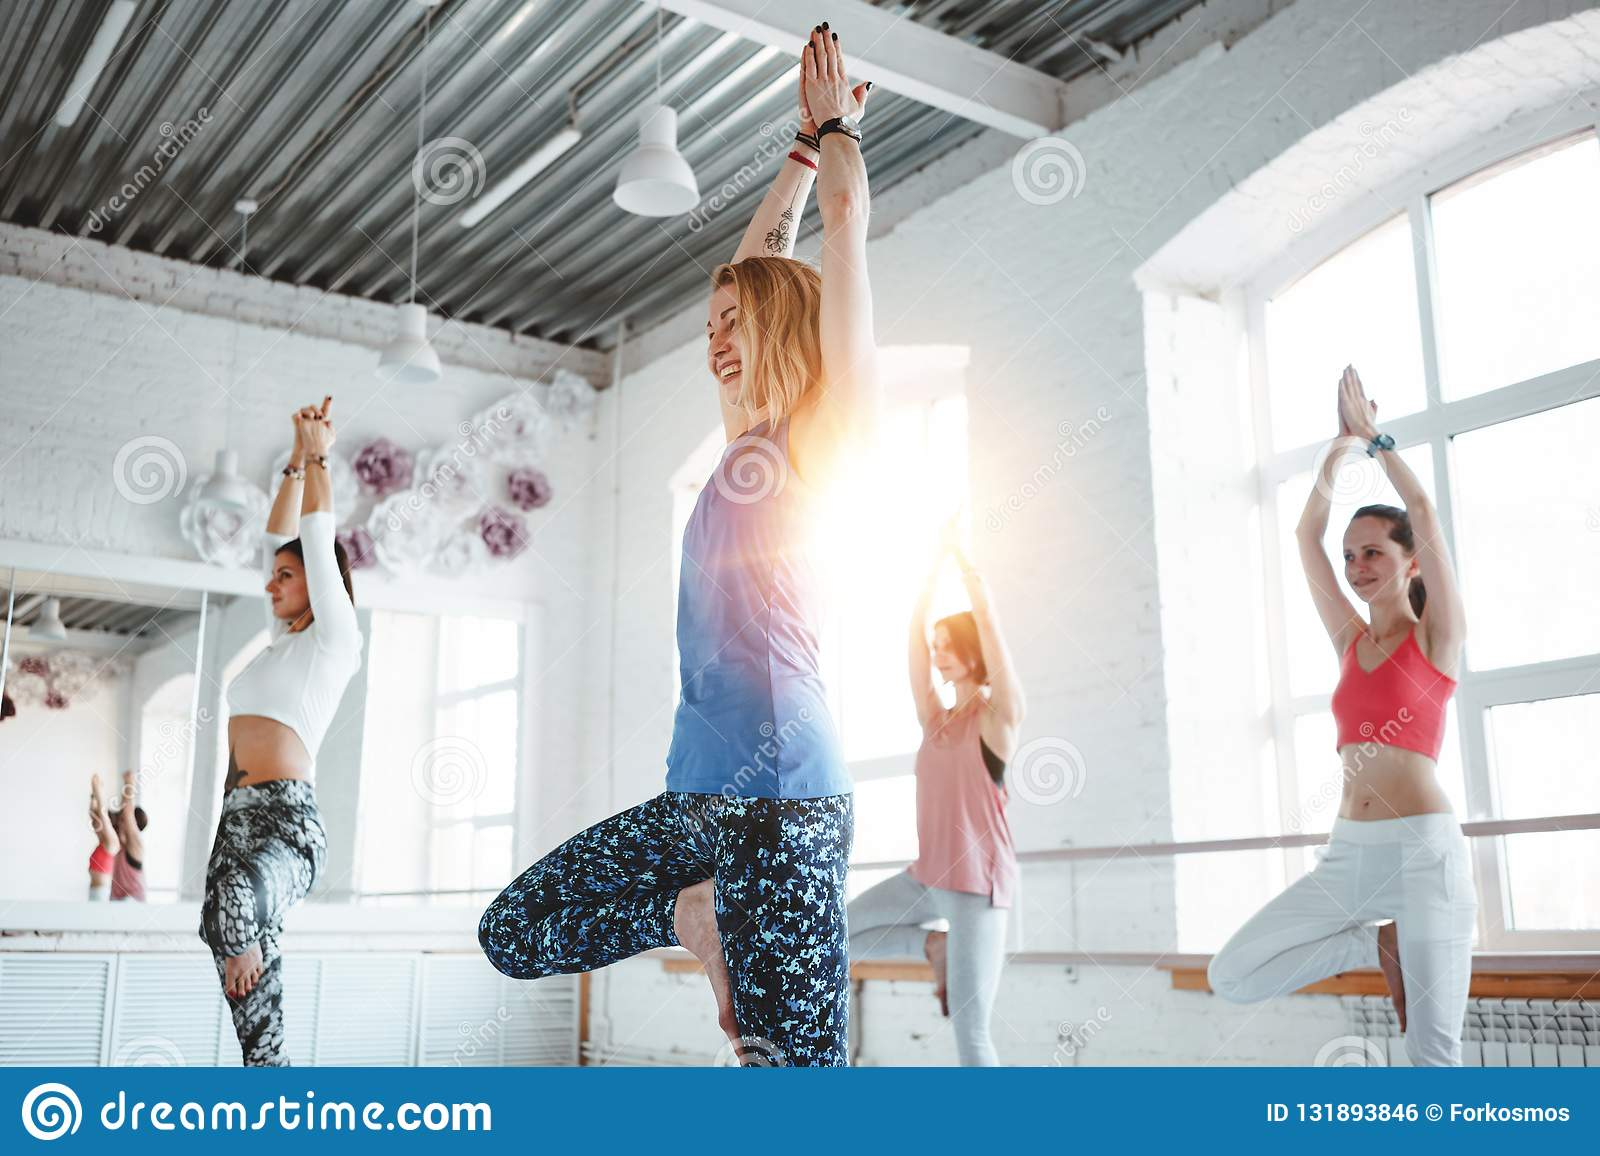 Group of young slim woman practice yoga exercise indoor class. People doing fitness together